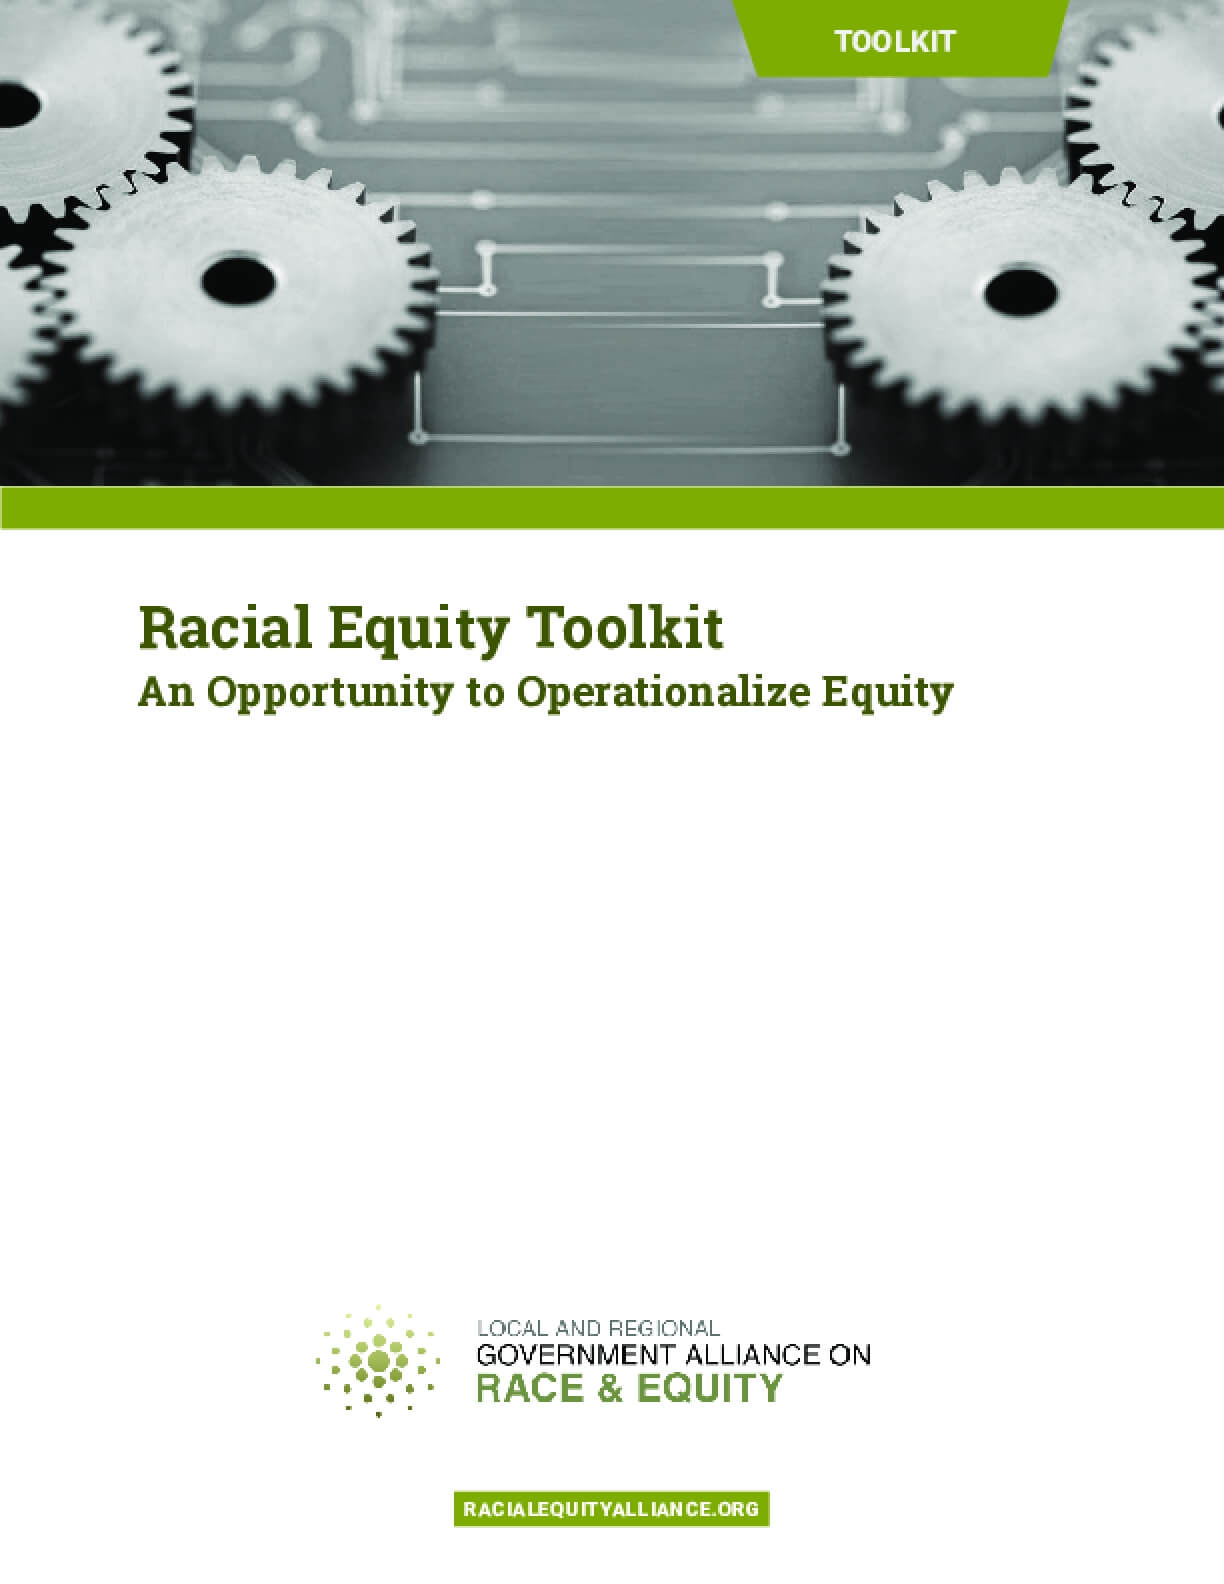 Racial Equity Toolkit: An Opportunity to Operationalize Equity